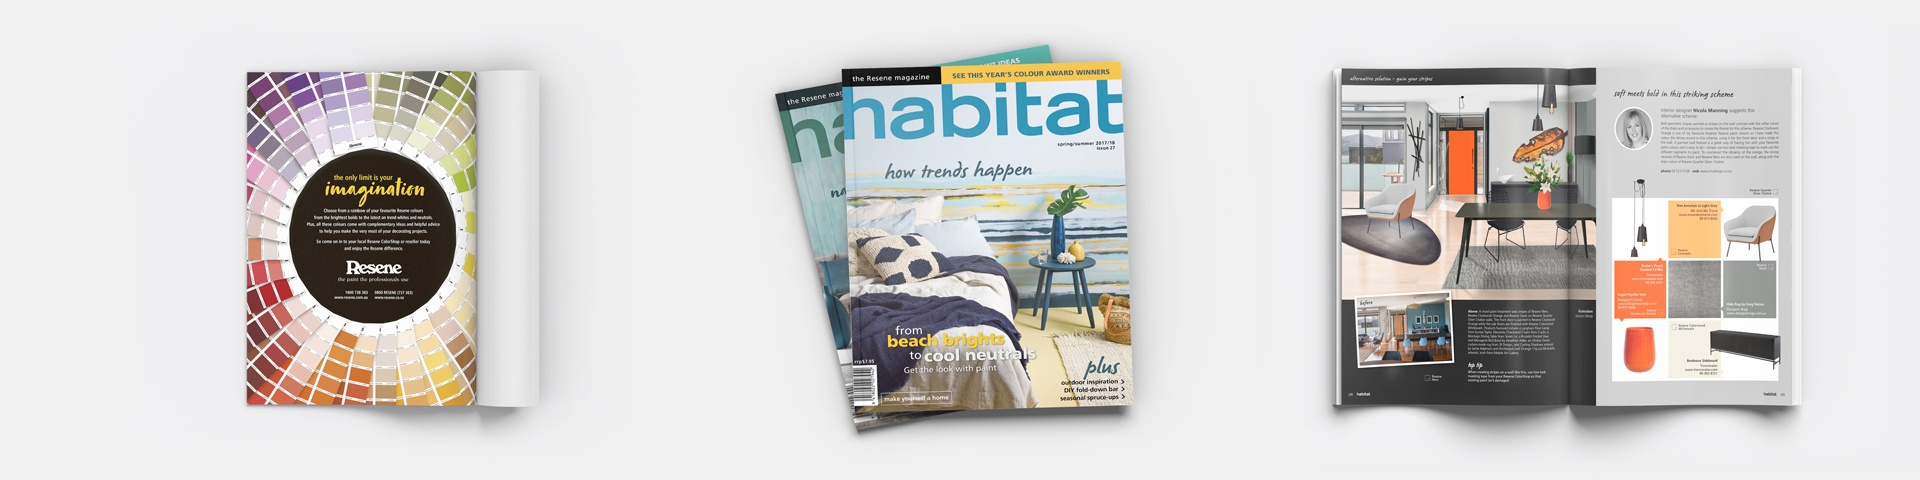 Habitat - A colorful magazine by Resene